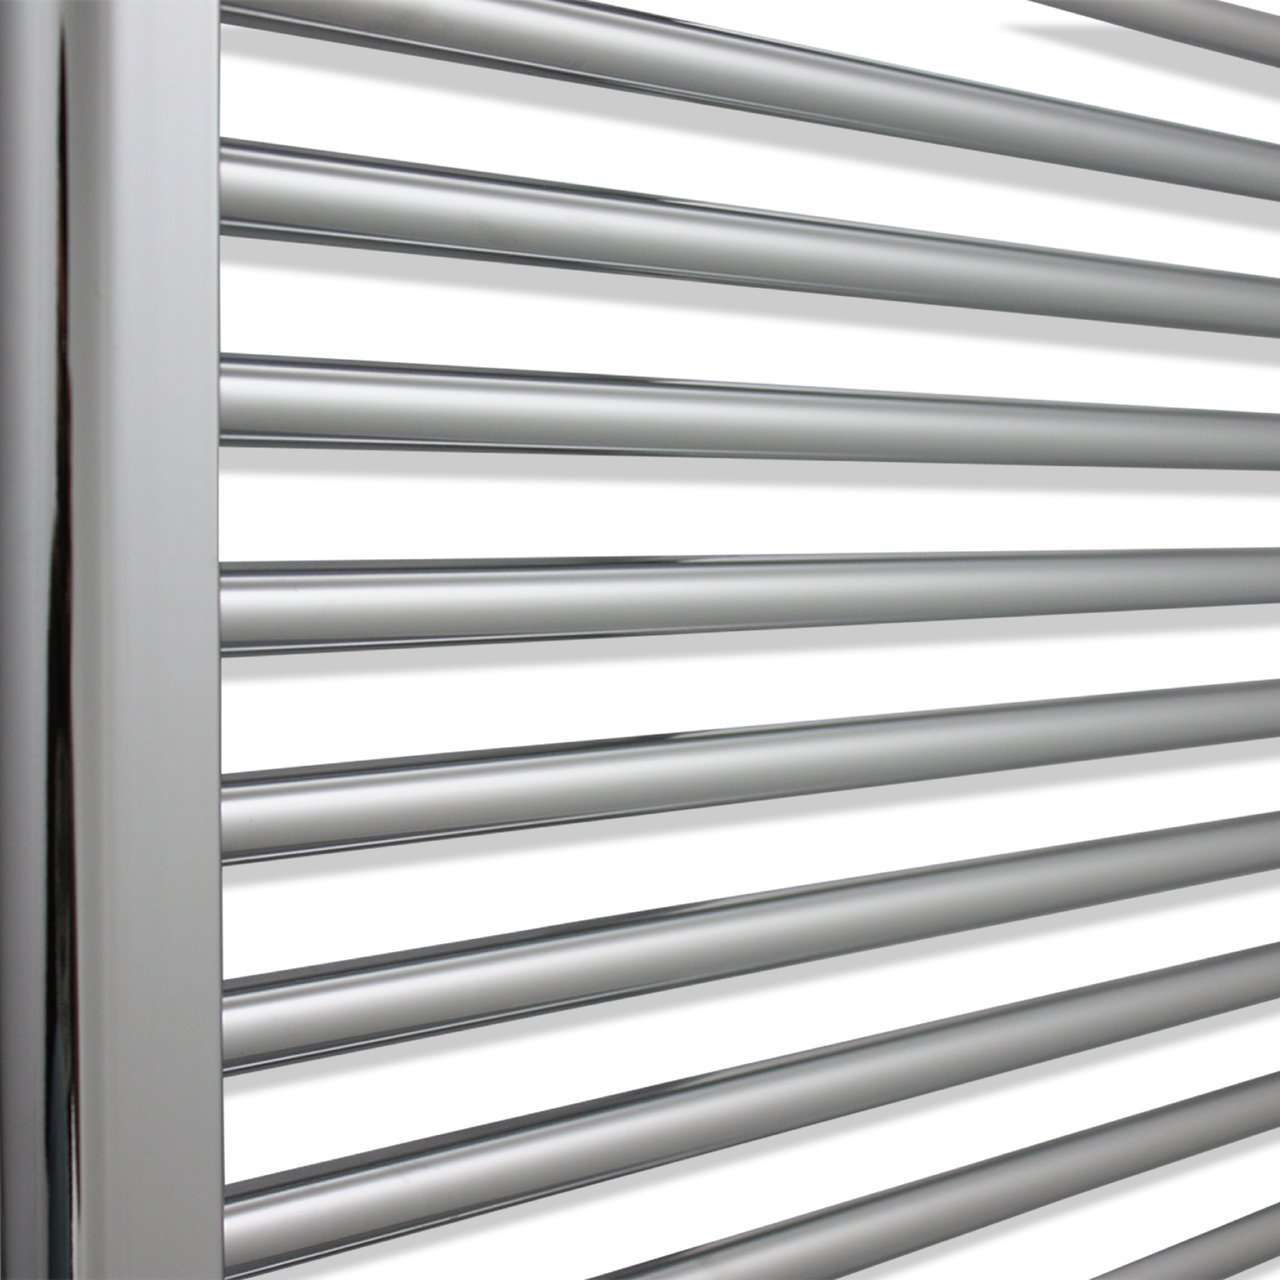 700mm Wide 400mm High Curved Chrome Heated Towel Rail Radiator HTR